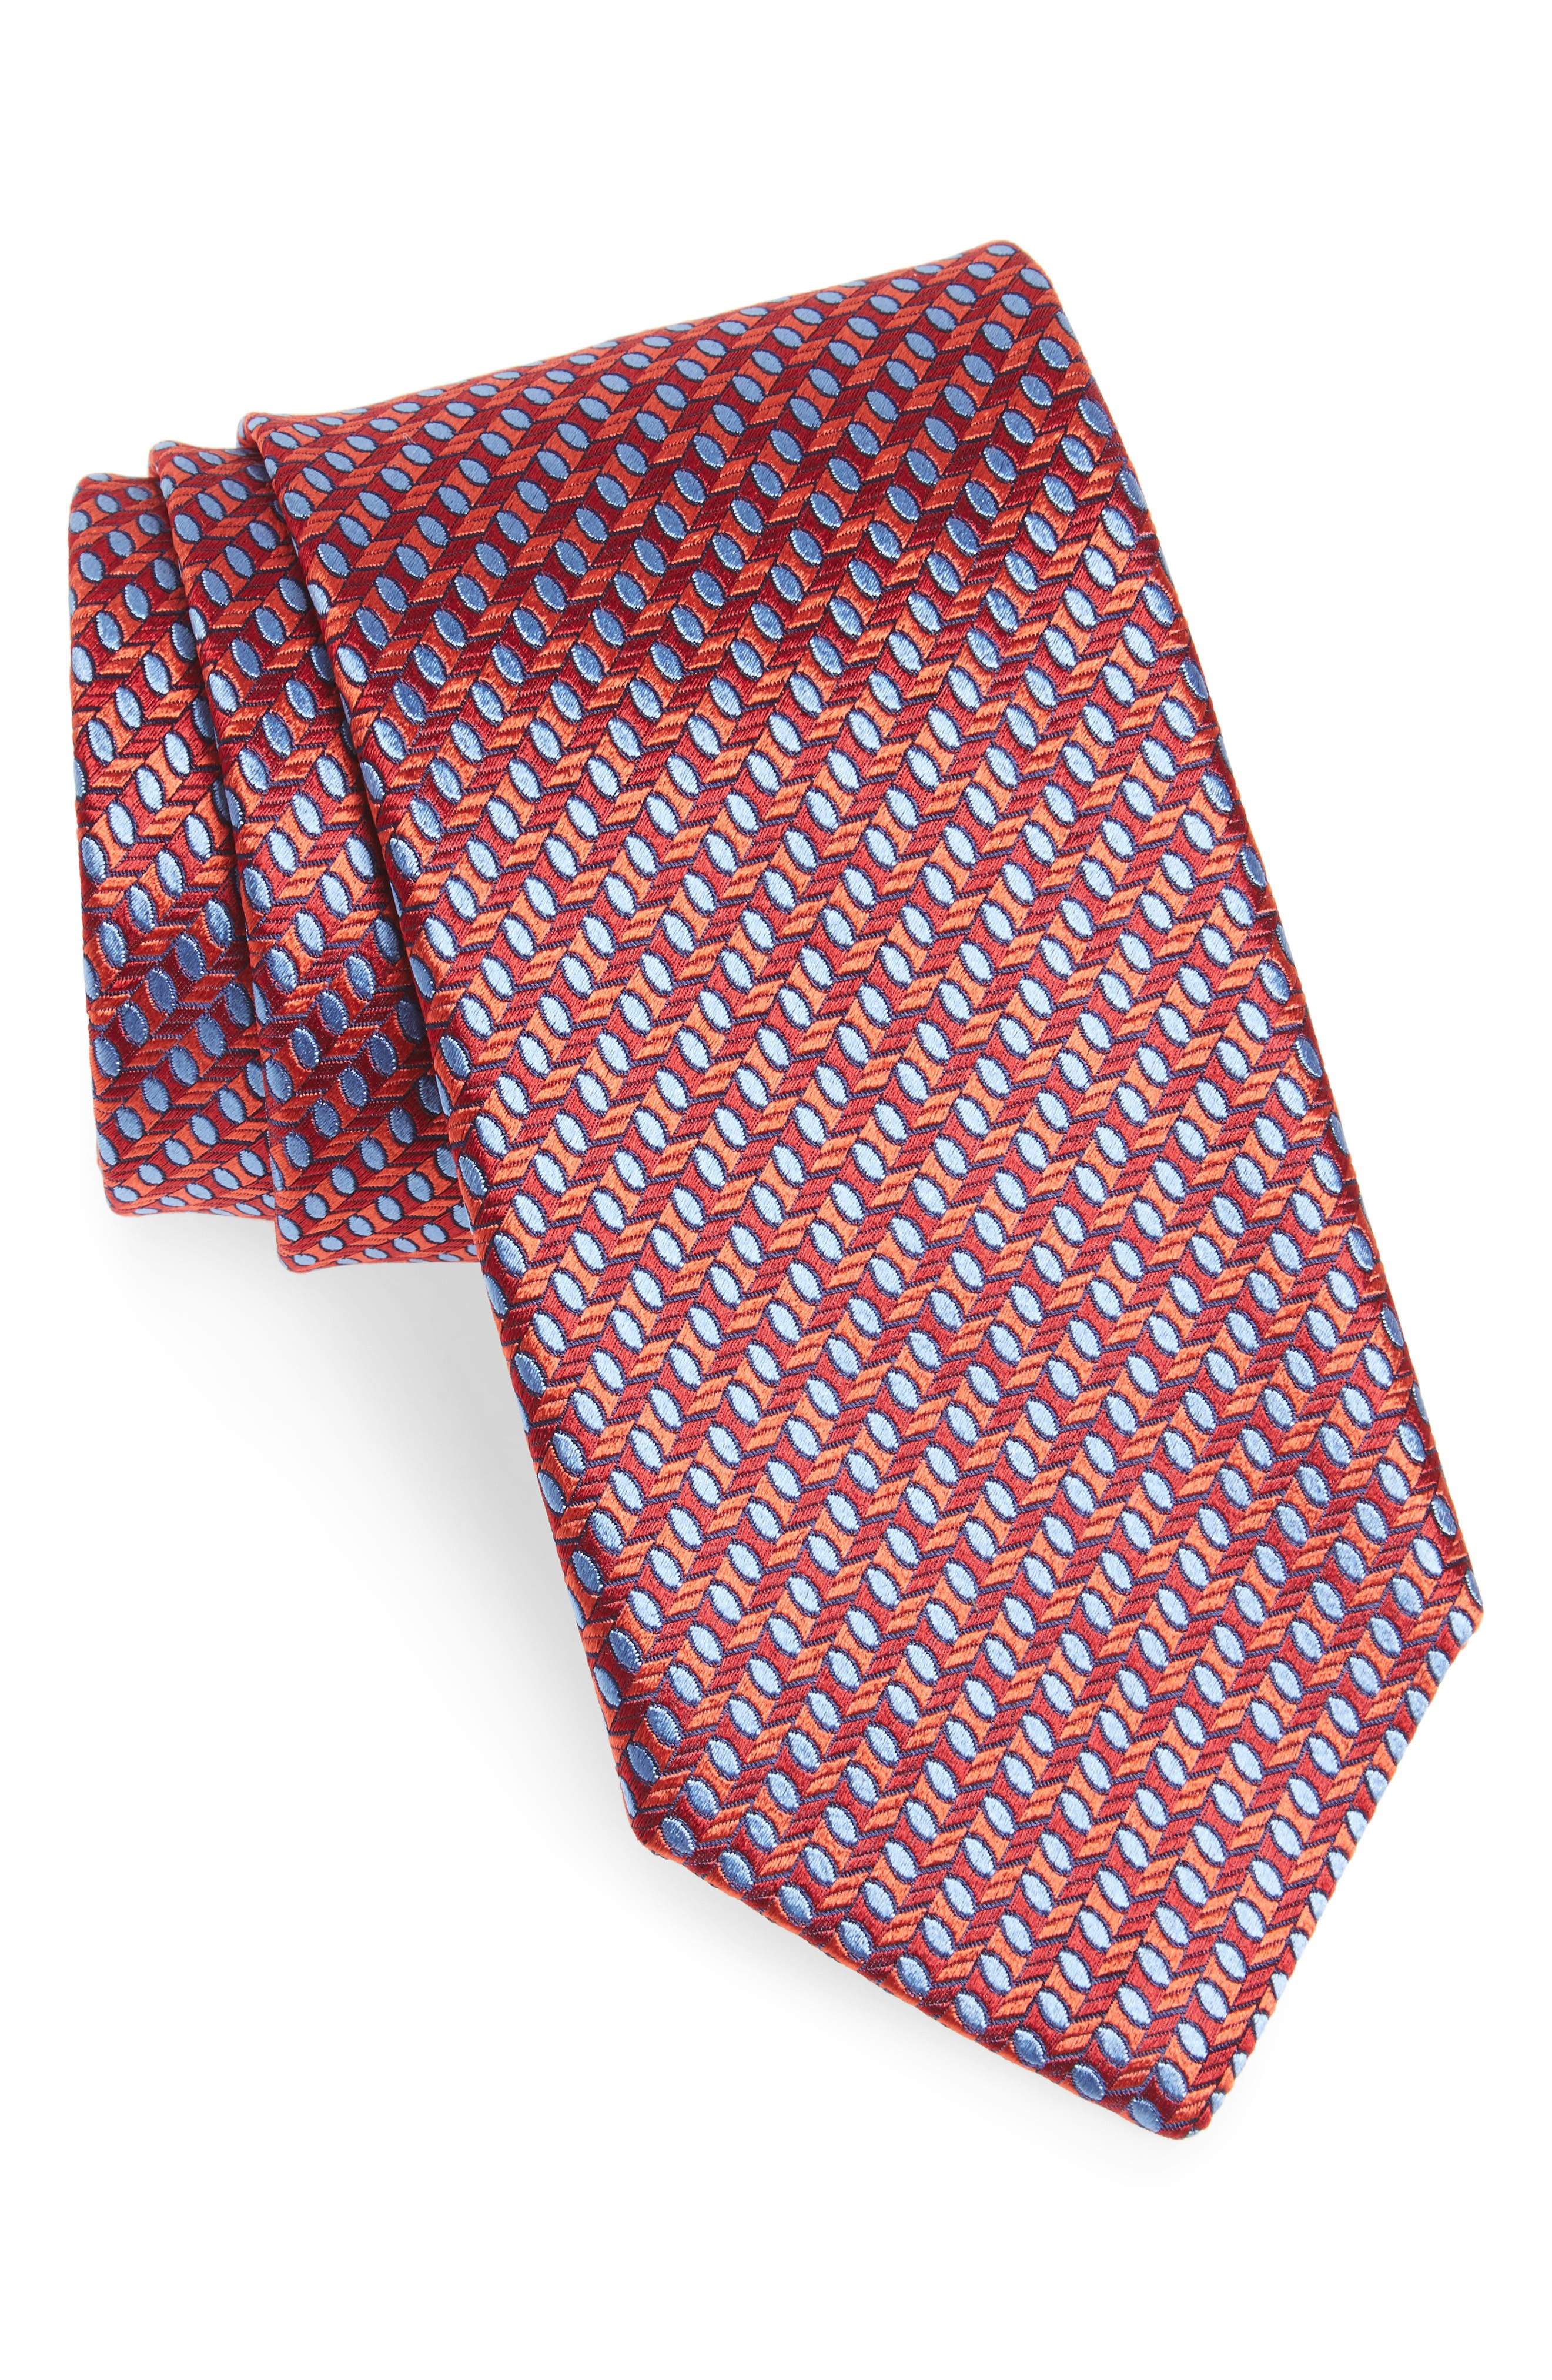 Alternate Image 1 Selected - Canali Geometric Silk Tie